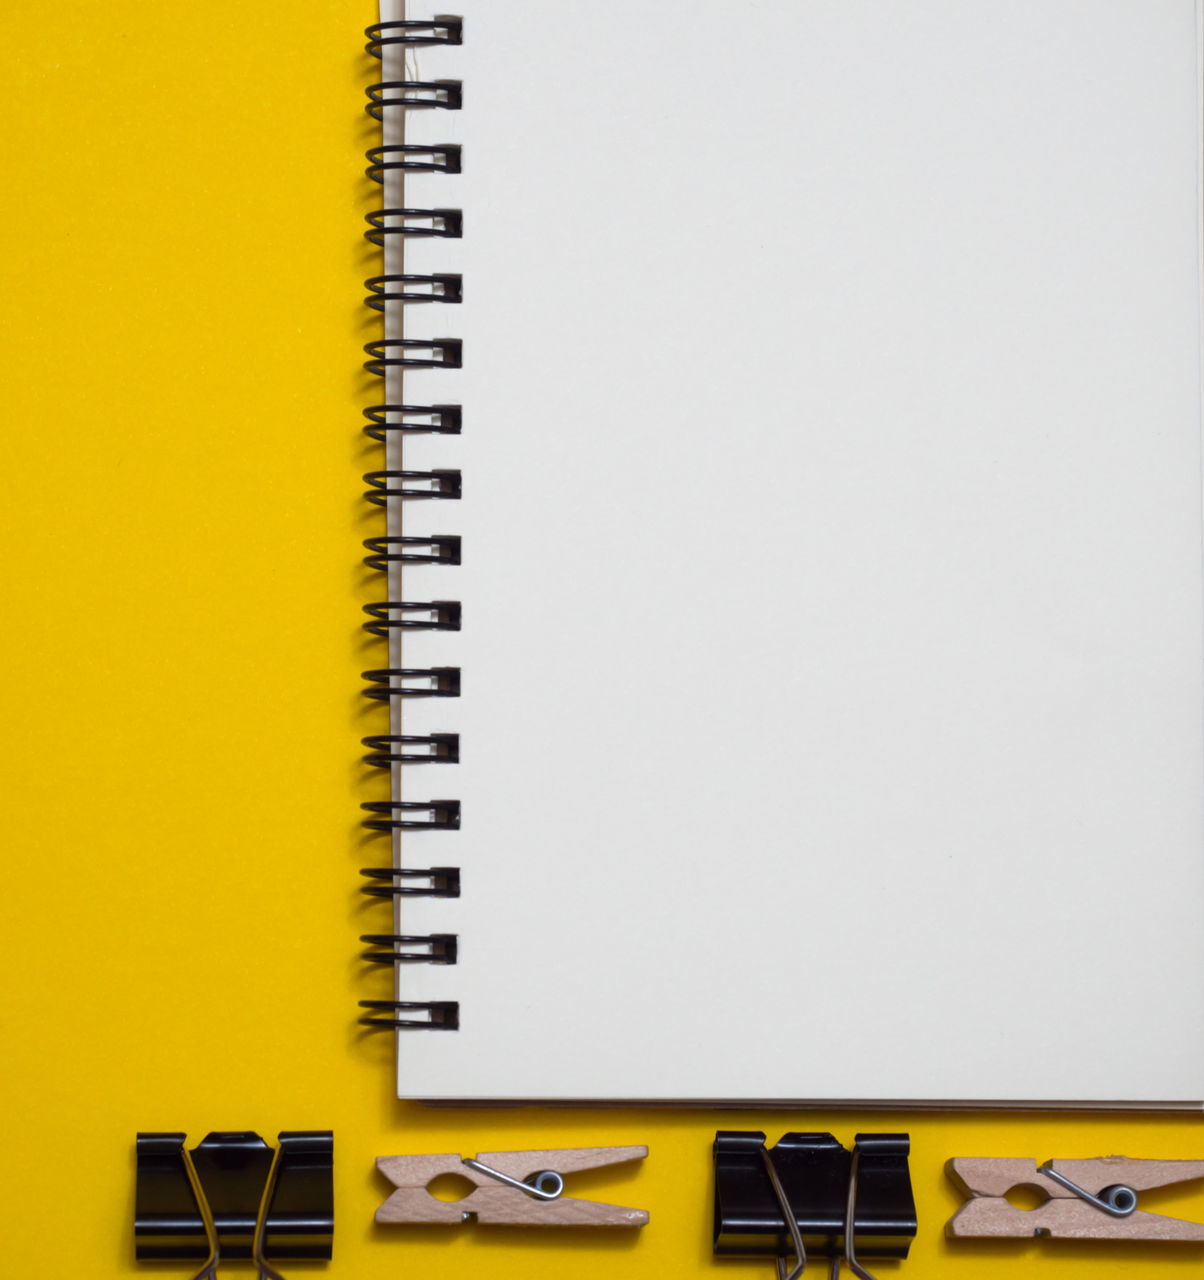 yellow, copy space, indoors, no people, still life, table, office, high angle view, spiral notebook, technology, note pad, business, office supply, paper, close-up, studio shot, publication, book, pen, connection, keyboard instrument